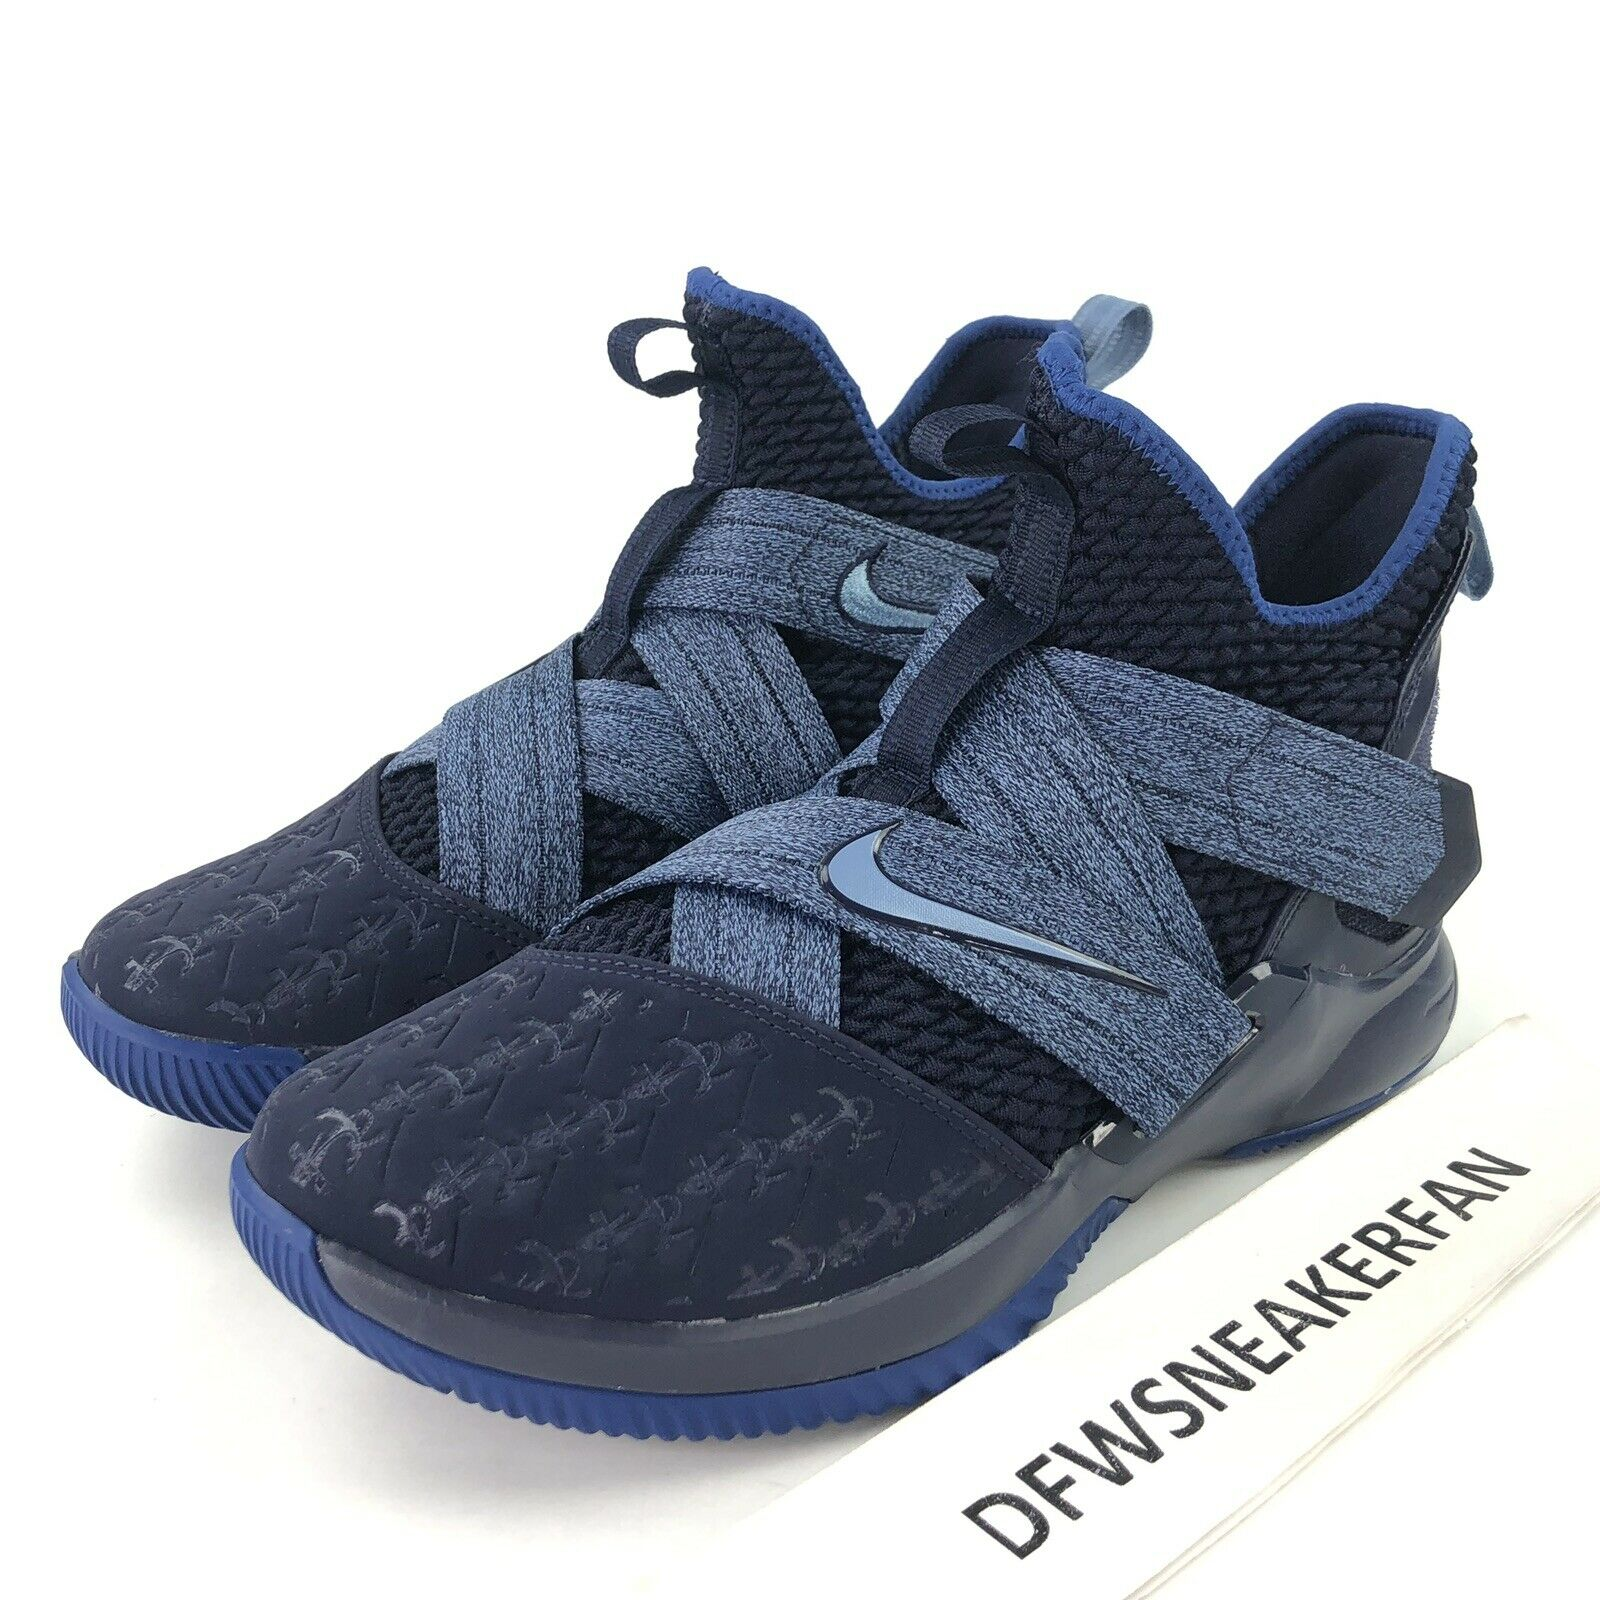 Nike LeBron Soldier 12 Anchor Men's Size 9 bluee Basketball shoes AO2609-401 New